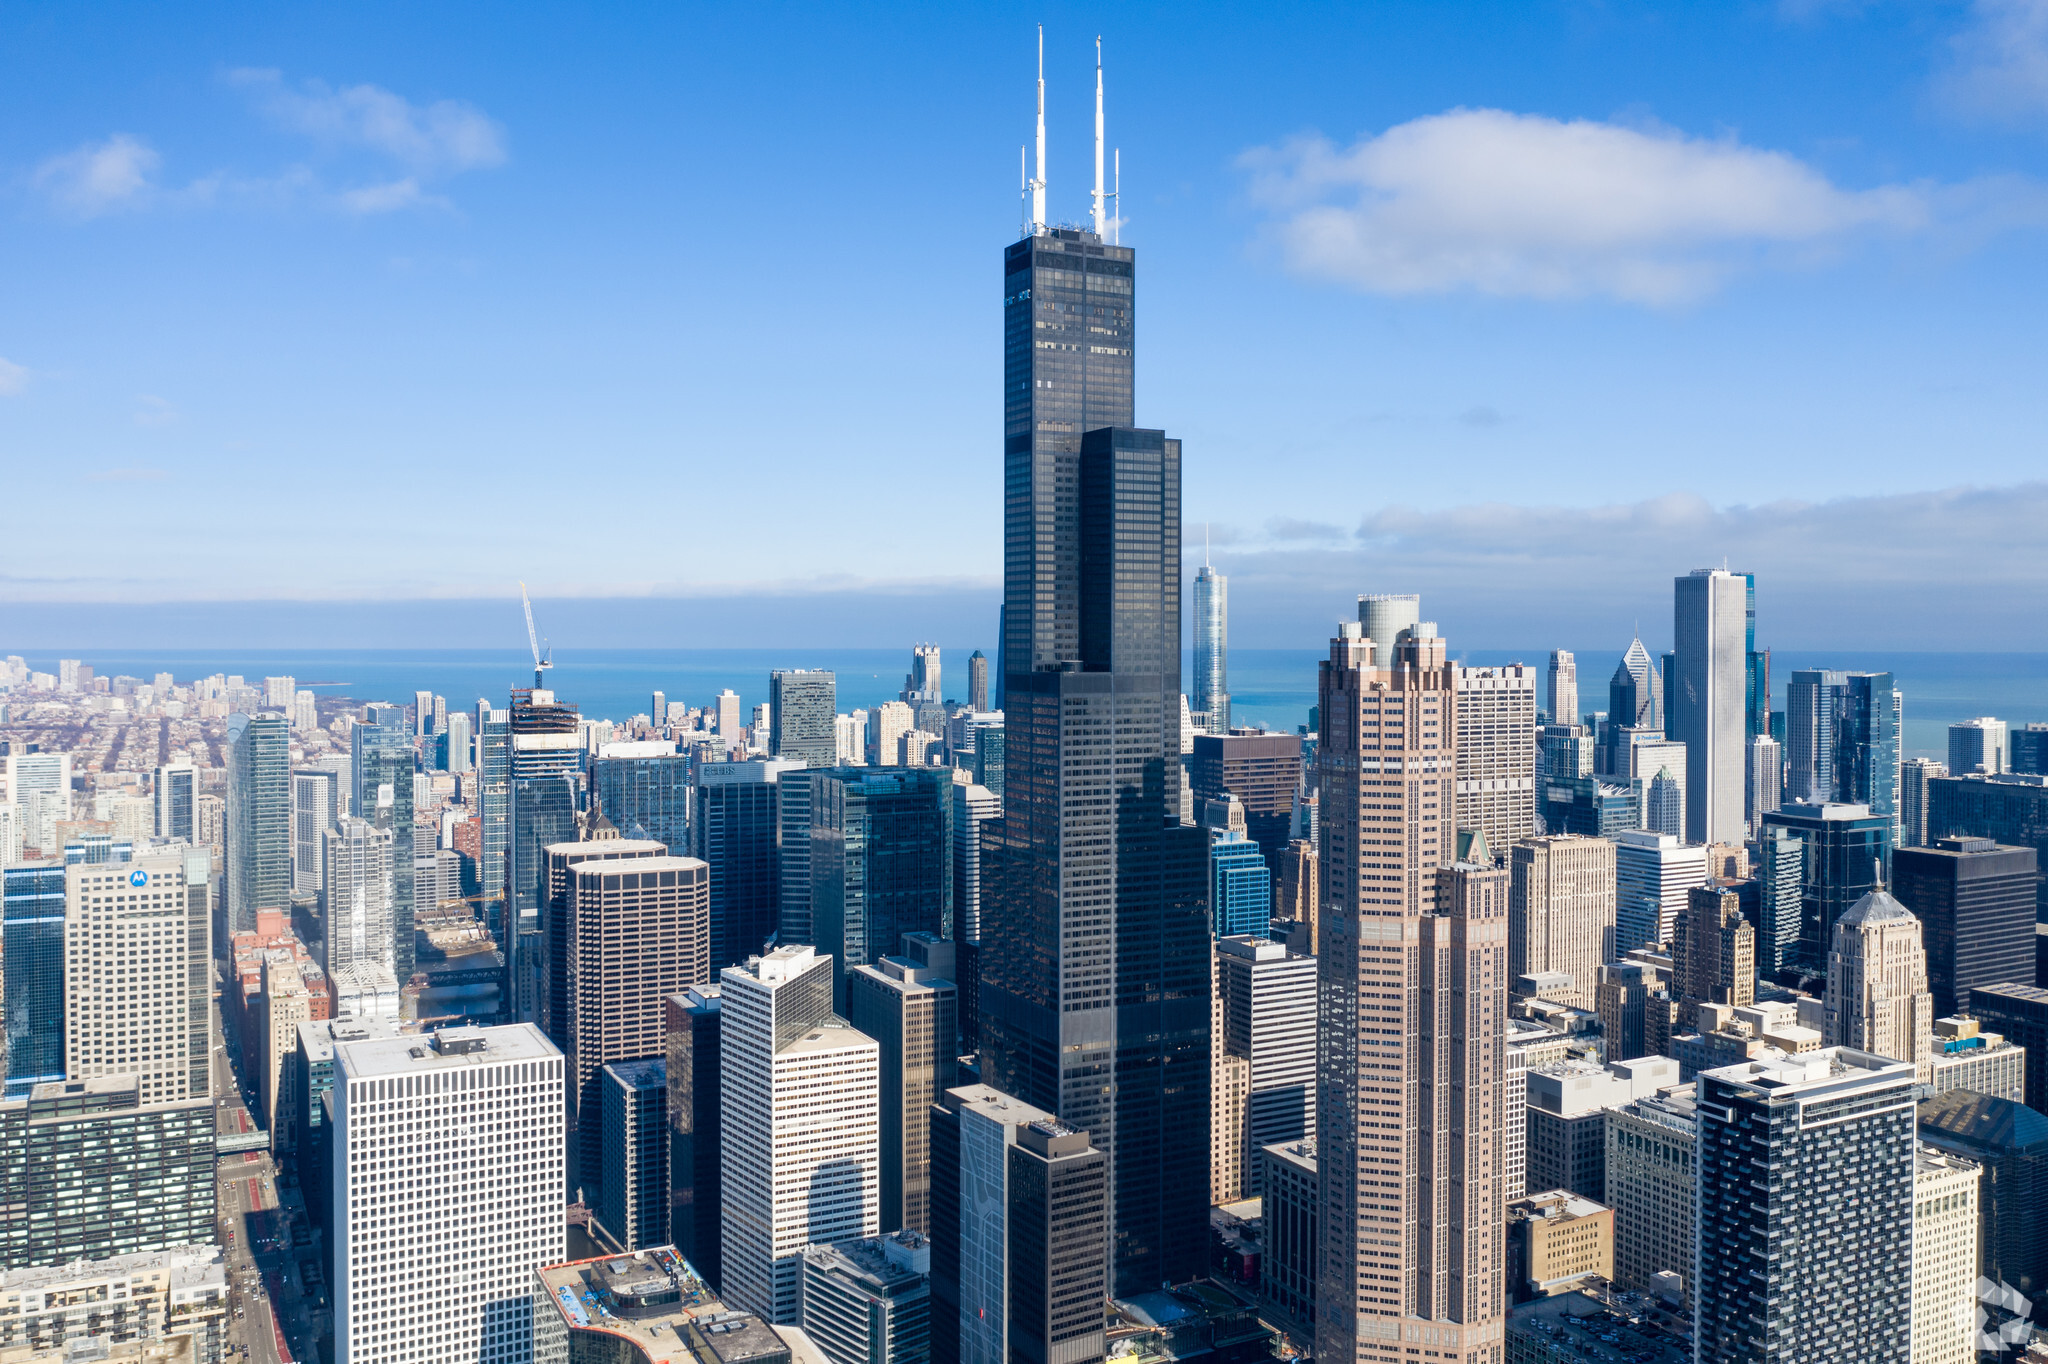 United Airlines is the largest tenant at Willis Tower in downtown Chicago, leasing about 814,000 square feet. (CoStar)